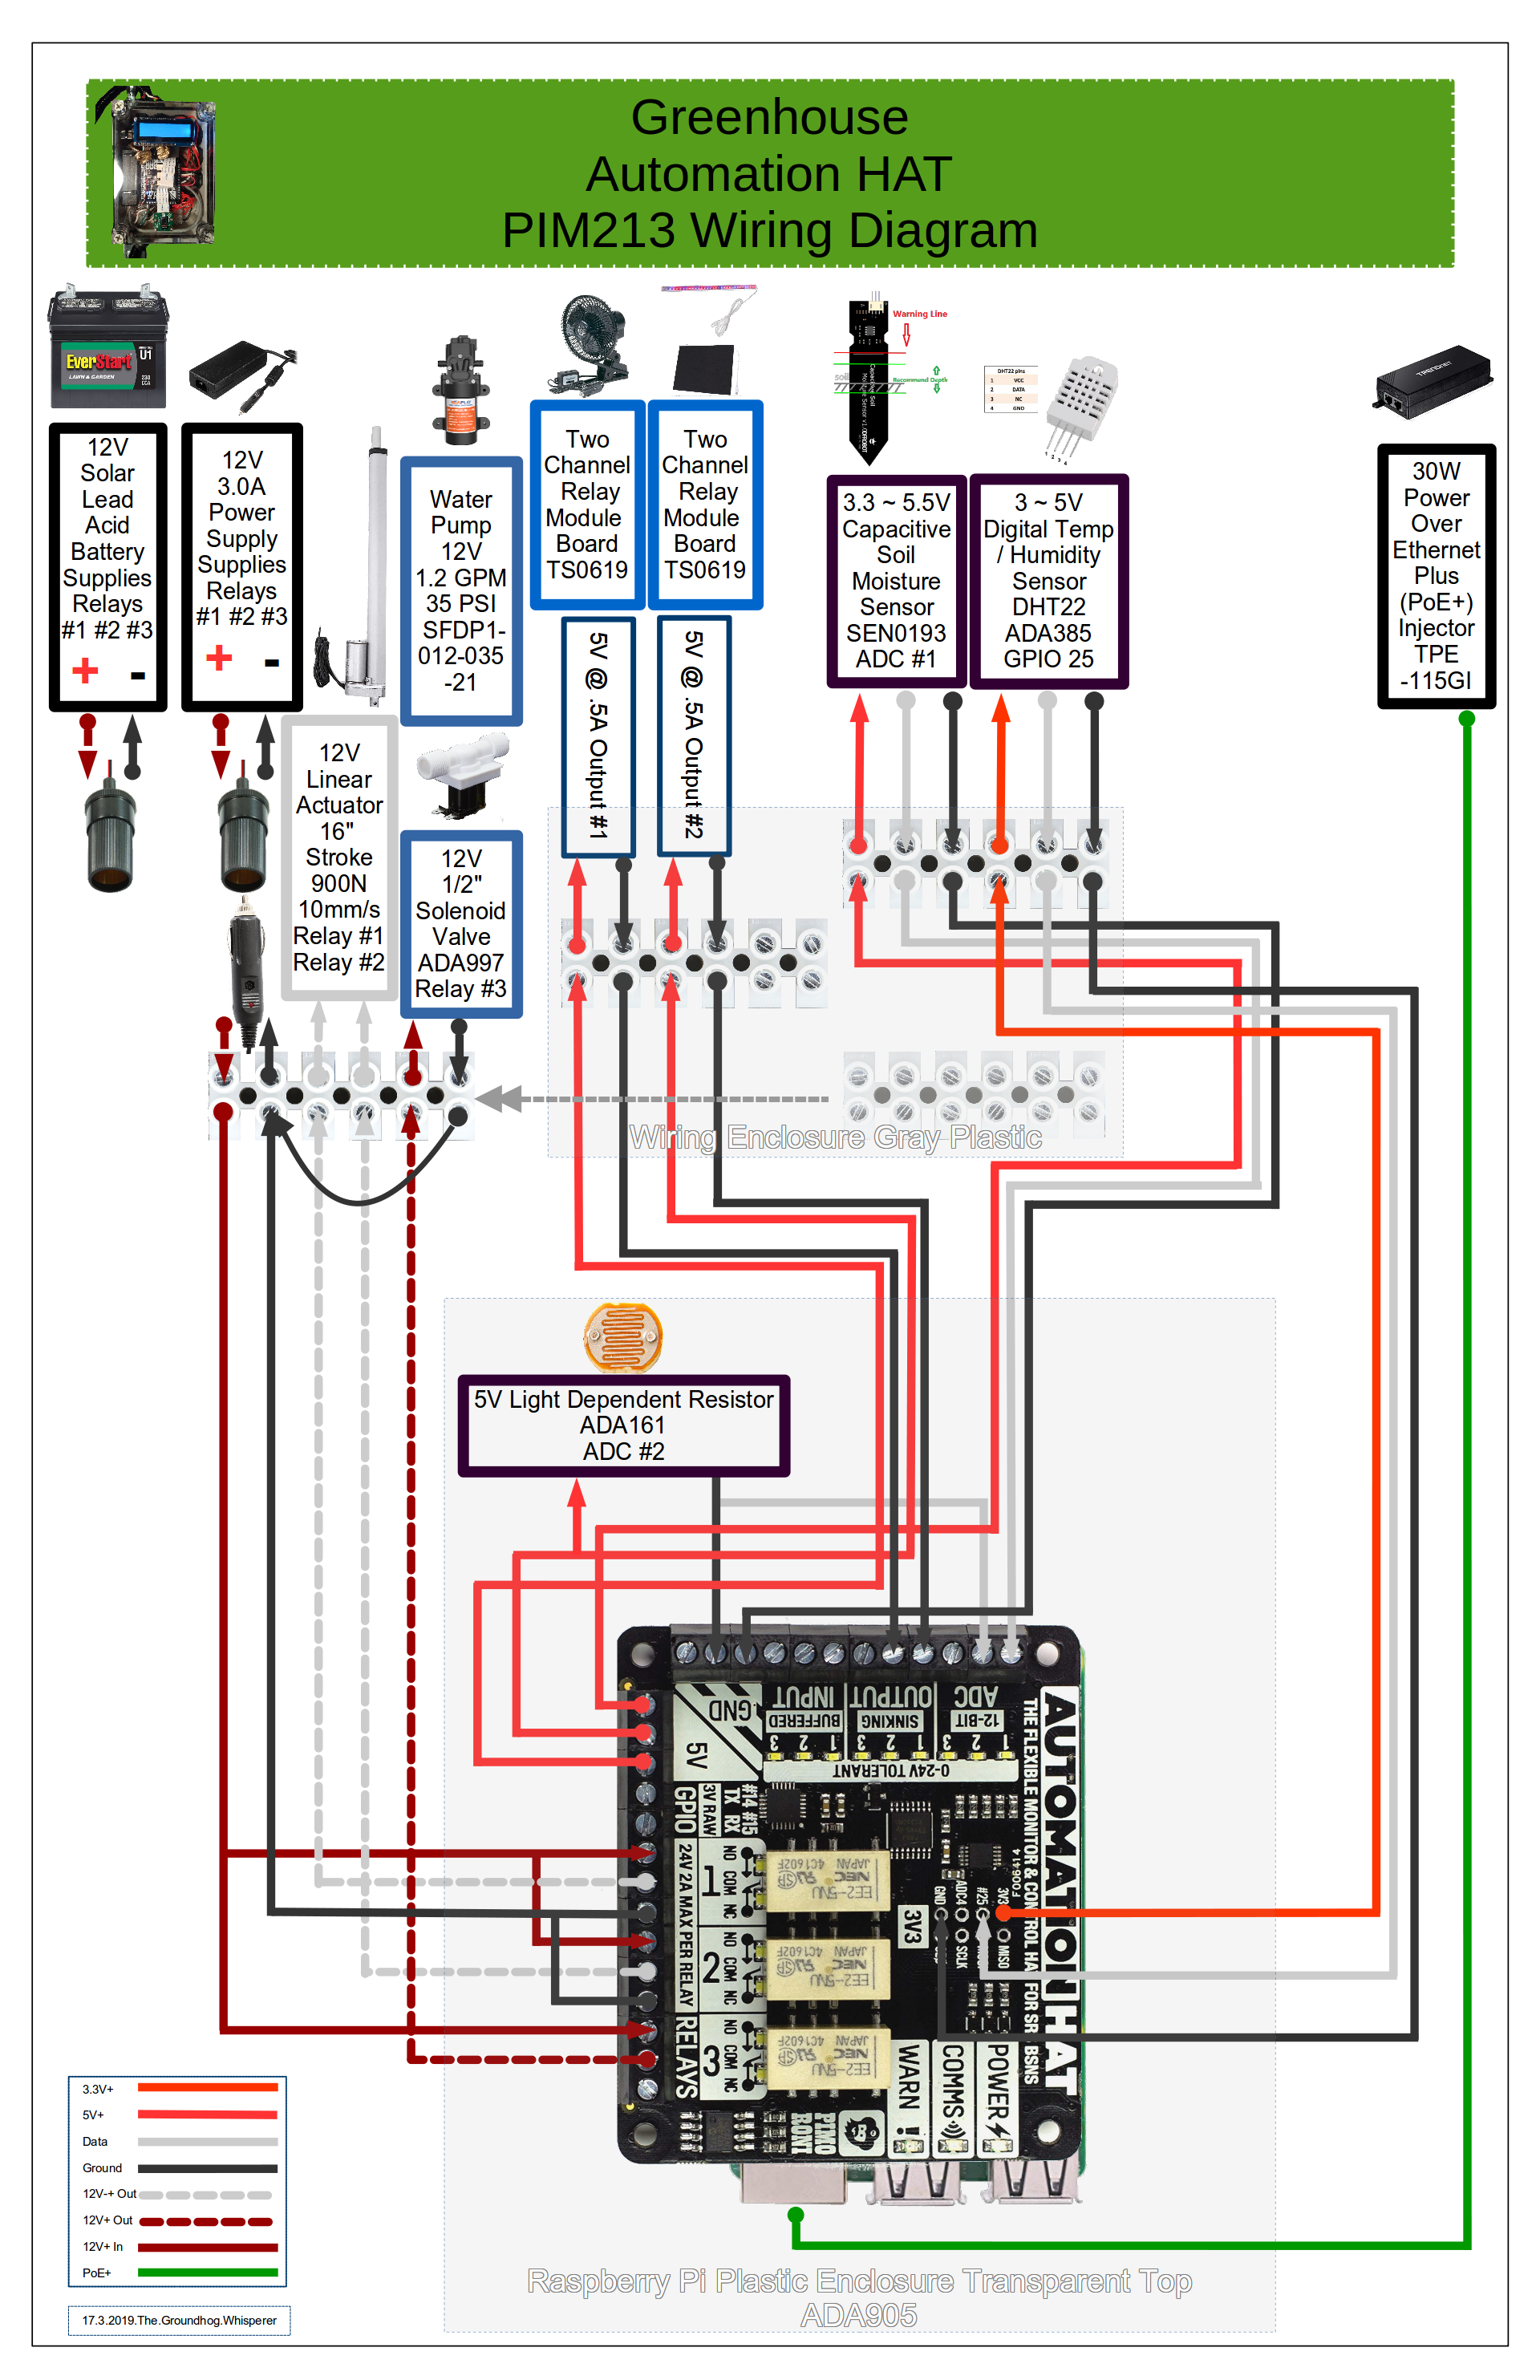 Lutron Dv-603P Wiring Diagram from raw.githubusercontent.com